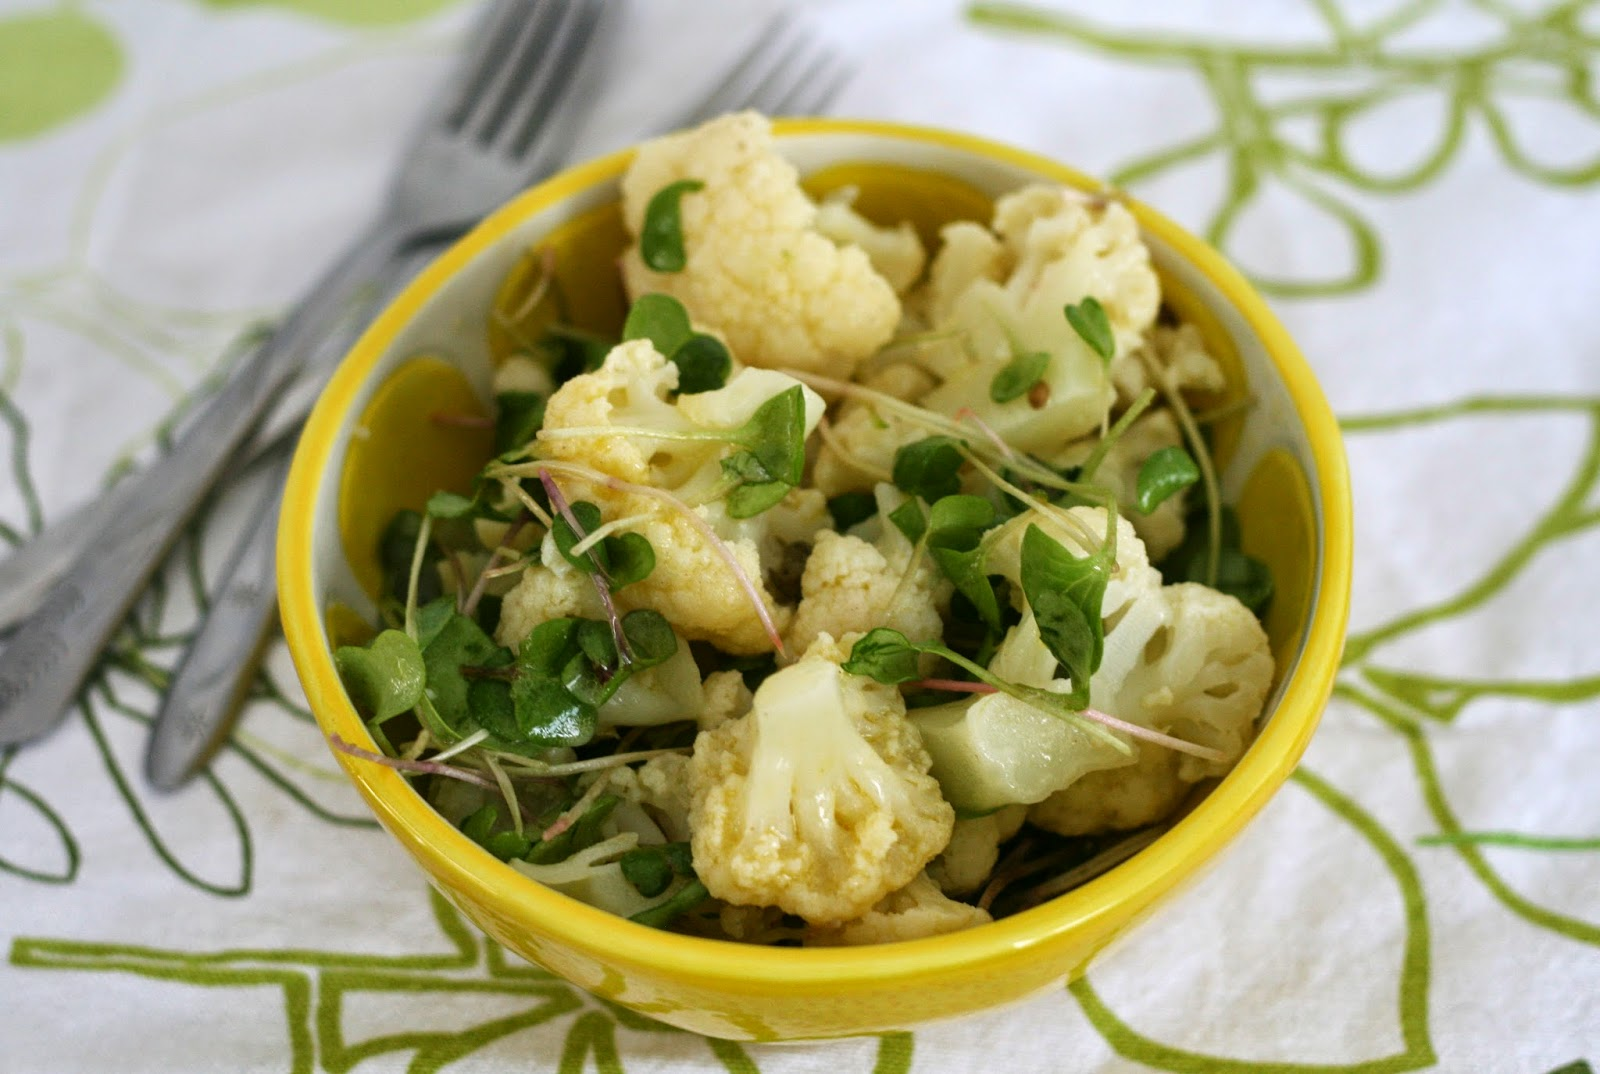 ... : Cauliflower & Radish Microgreen Salad with Lemon-Caper Dressing